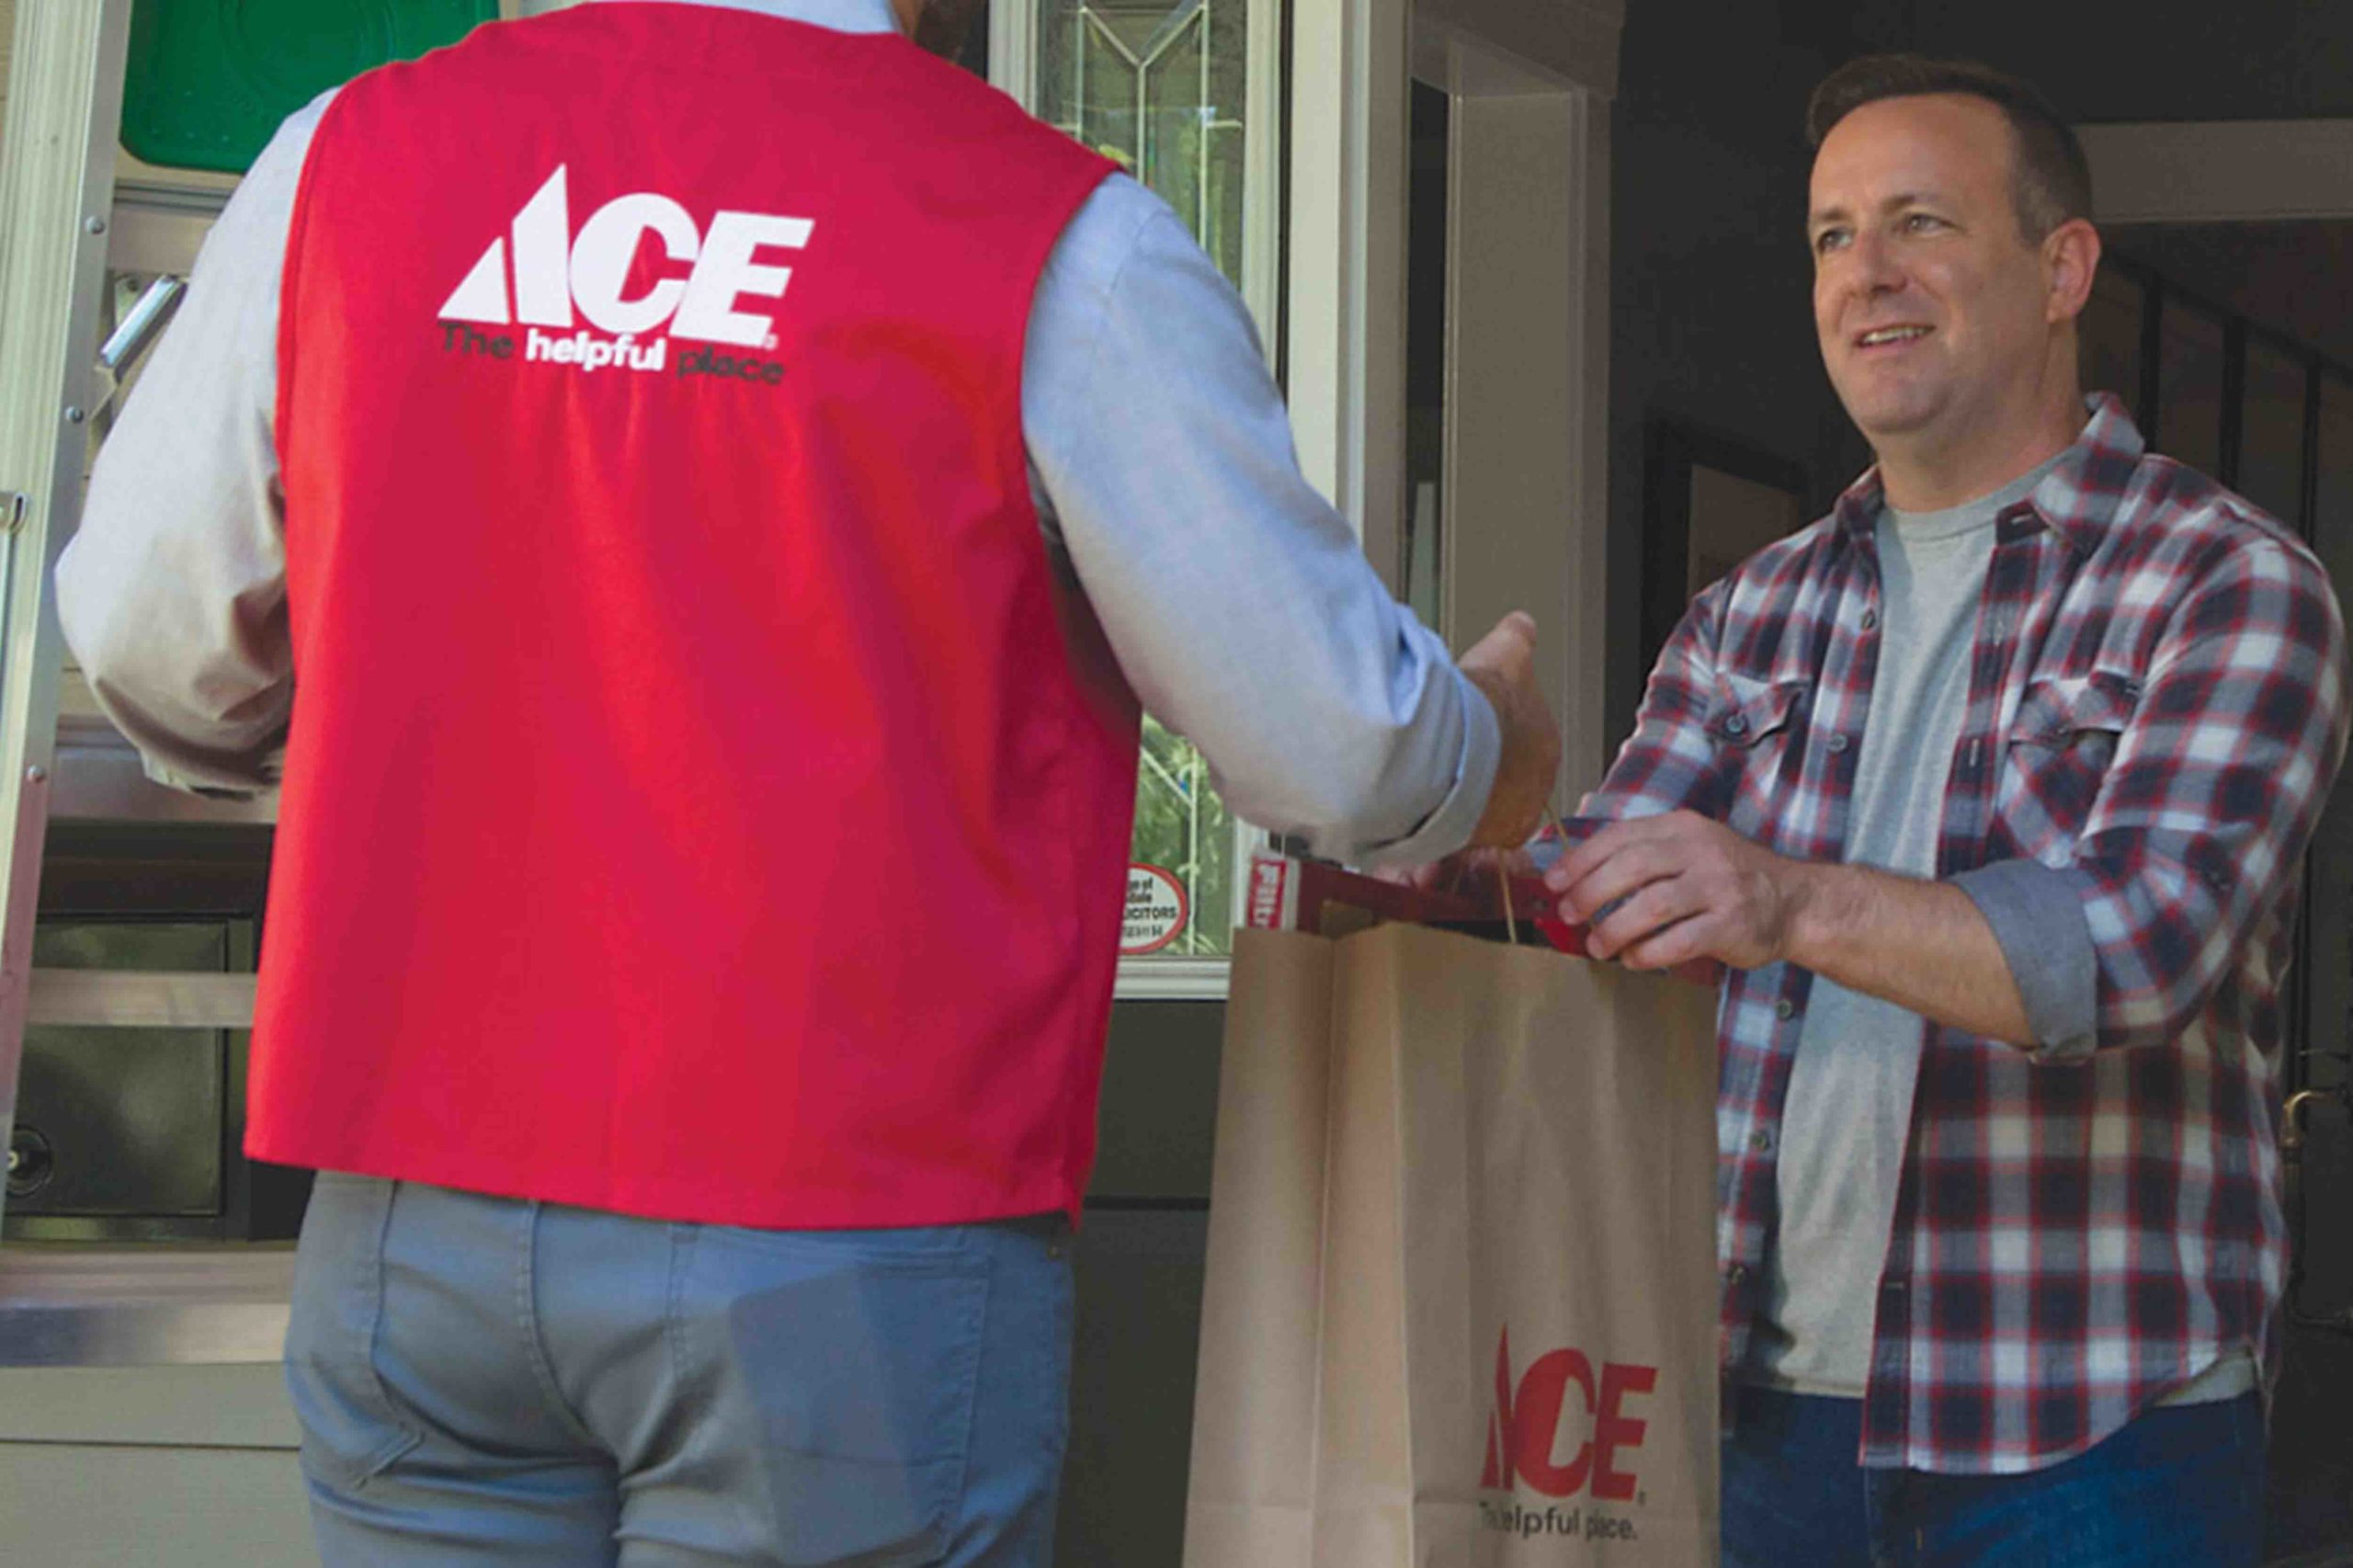 ace delivers to your home